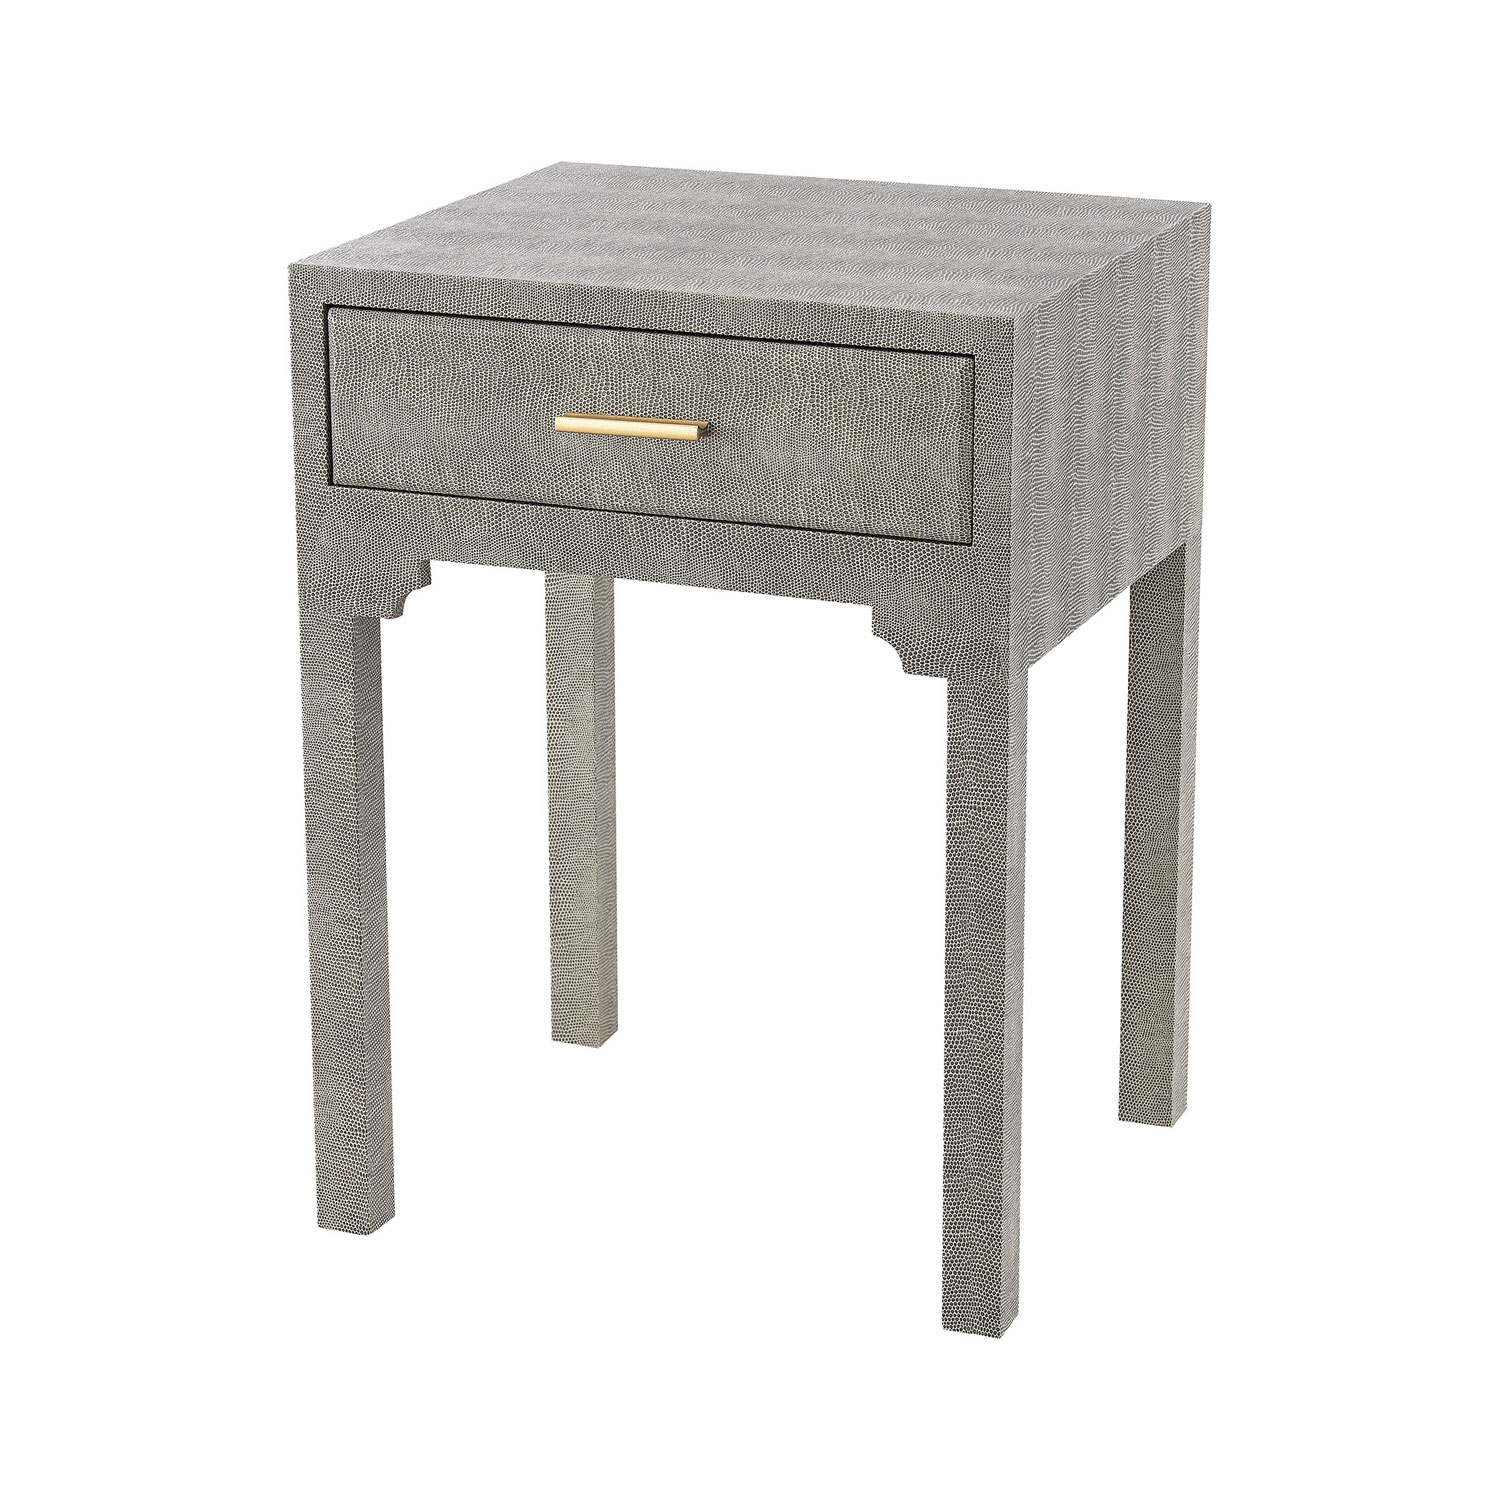 sterling industries sands point grey faux shagreen accent table outdoor side hover zoom outside tables nautical kitchen lighting fretwork mosaic coffee gray dining room furniture